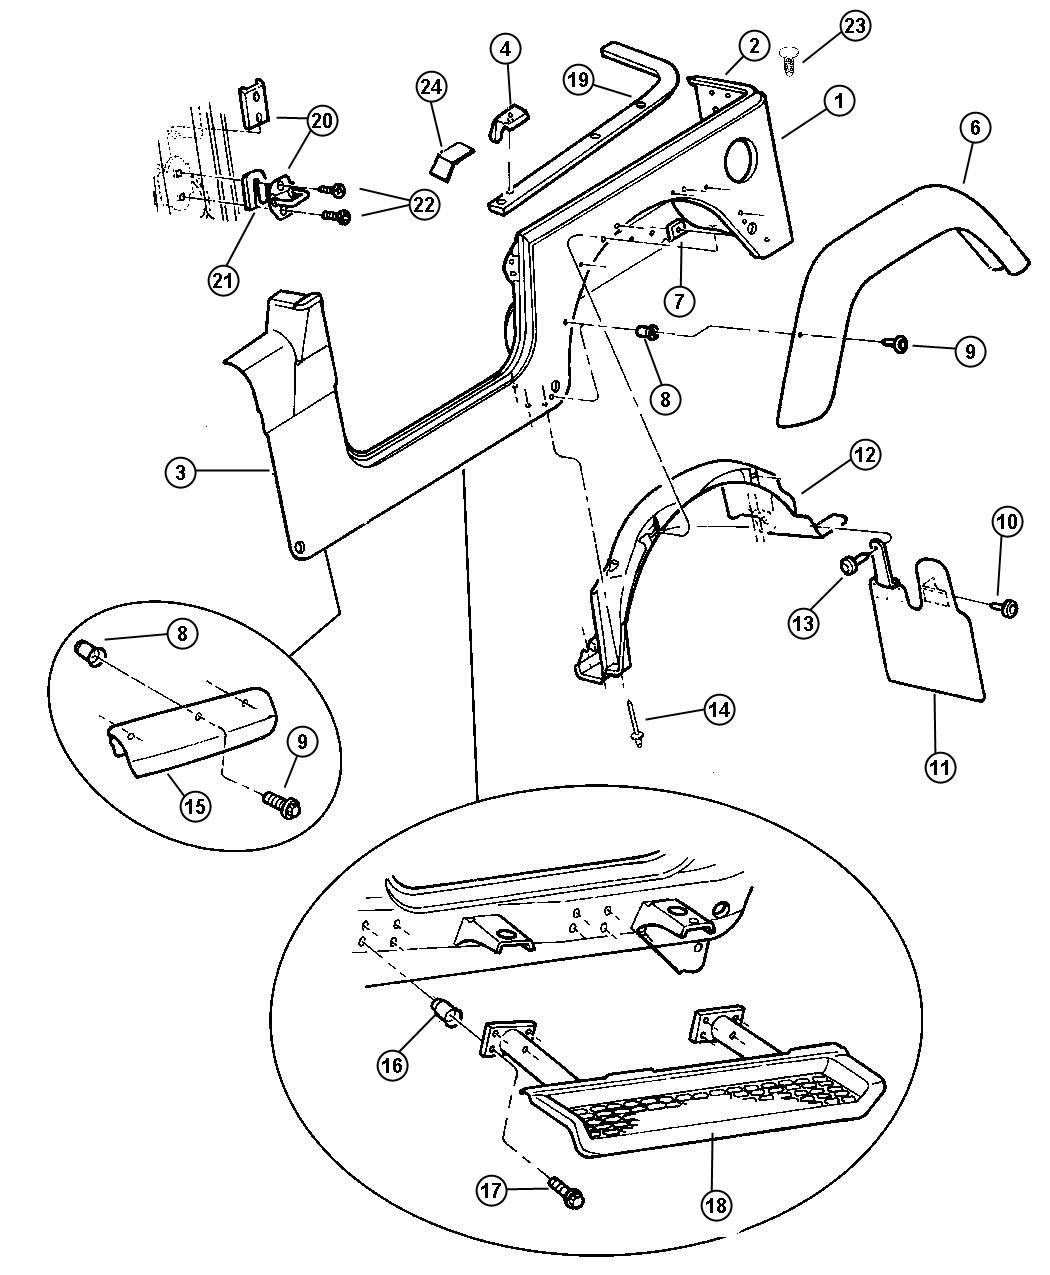 Jeep Cherokee Body Parts Replacement likewise 2003 Jeep Liberty Parts Diagram in addition Jeep Yj Replacement Parts further Jeep Wrangler Yj Body Parts besides 1995 Jeep Wrangler Body Parts. on jeep wrangler yj replacement parts quadratec html